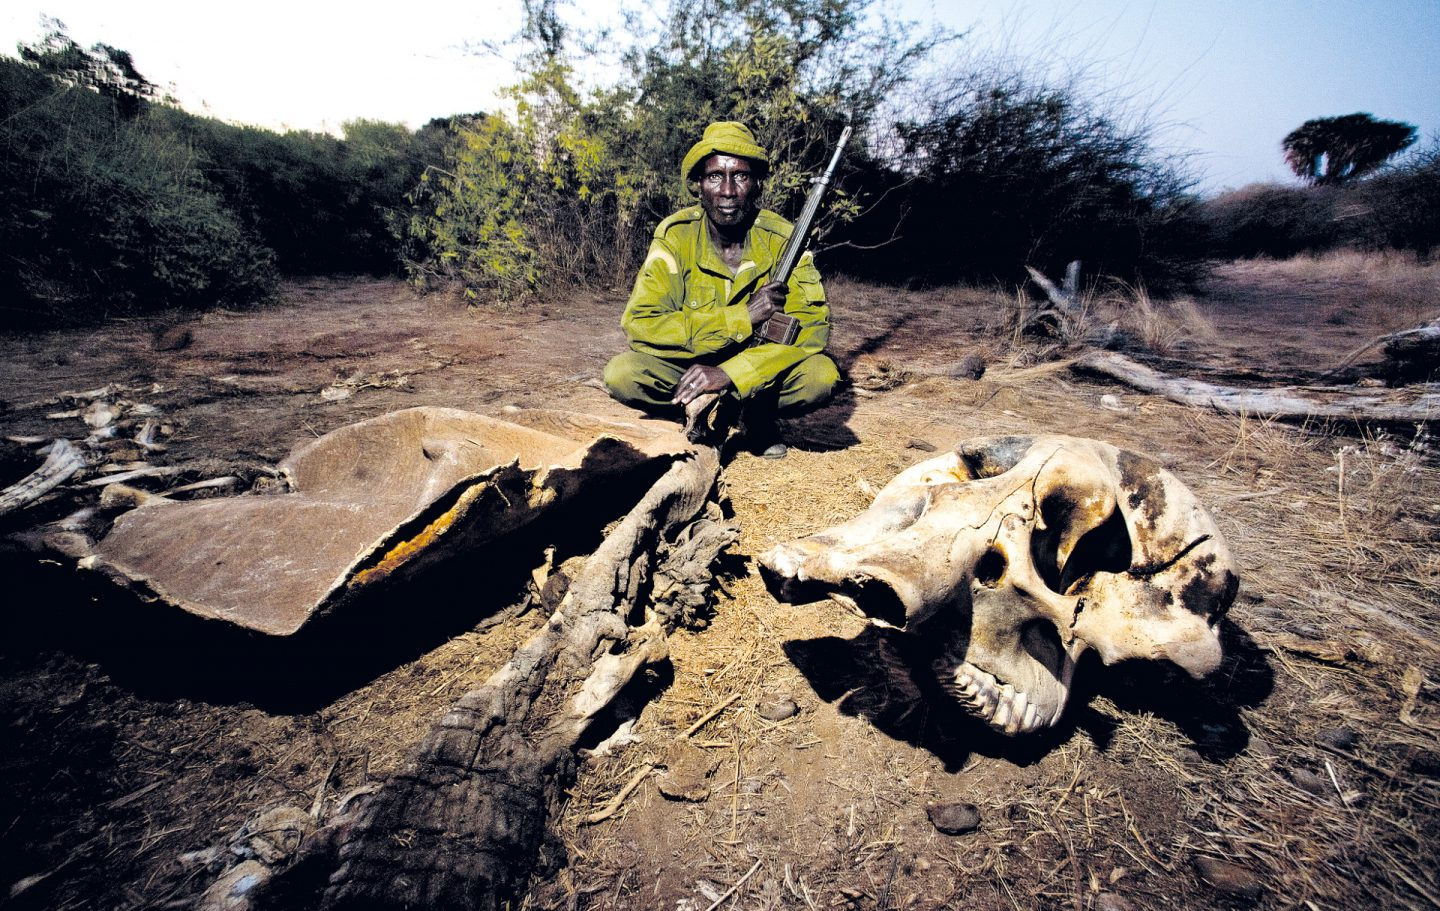 Remains of an elephant killed by poachers, close to Serolipi River, Sera.